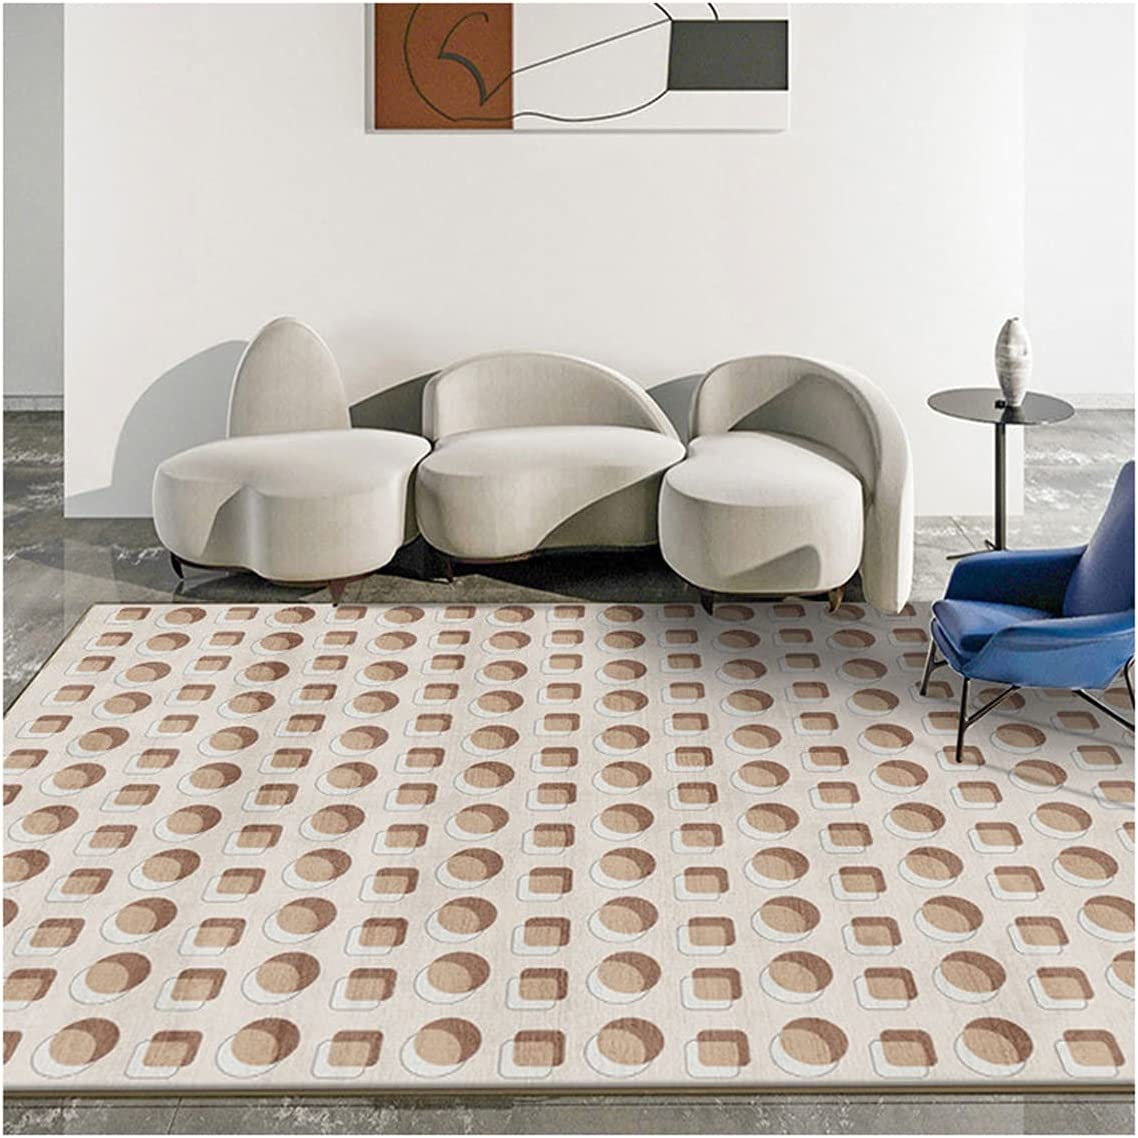 Area Bedroom Rugs,Pattern Carpet for Household Living Tulsa Mall Bed Room Challenge the lowest price